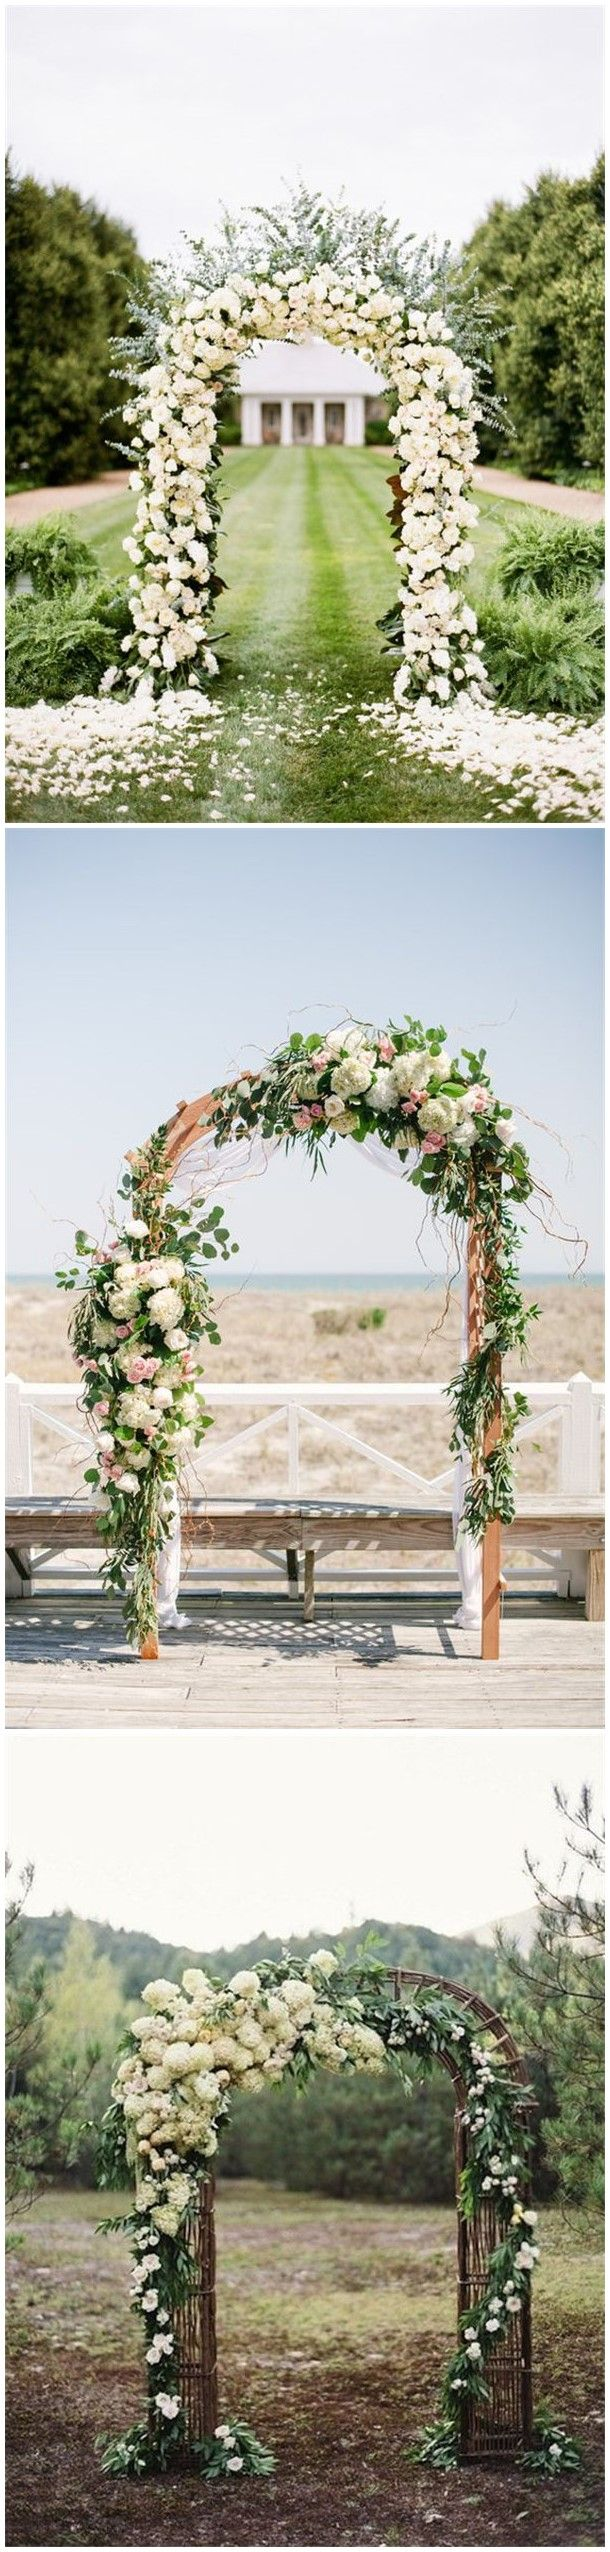 Wedding gate decoration ideas  Rustic Weddings   DIY Floral Wedding Arch Decoration Ideas